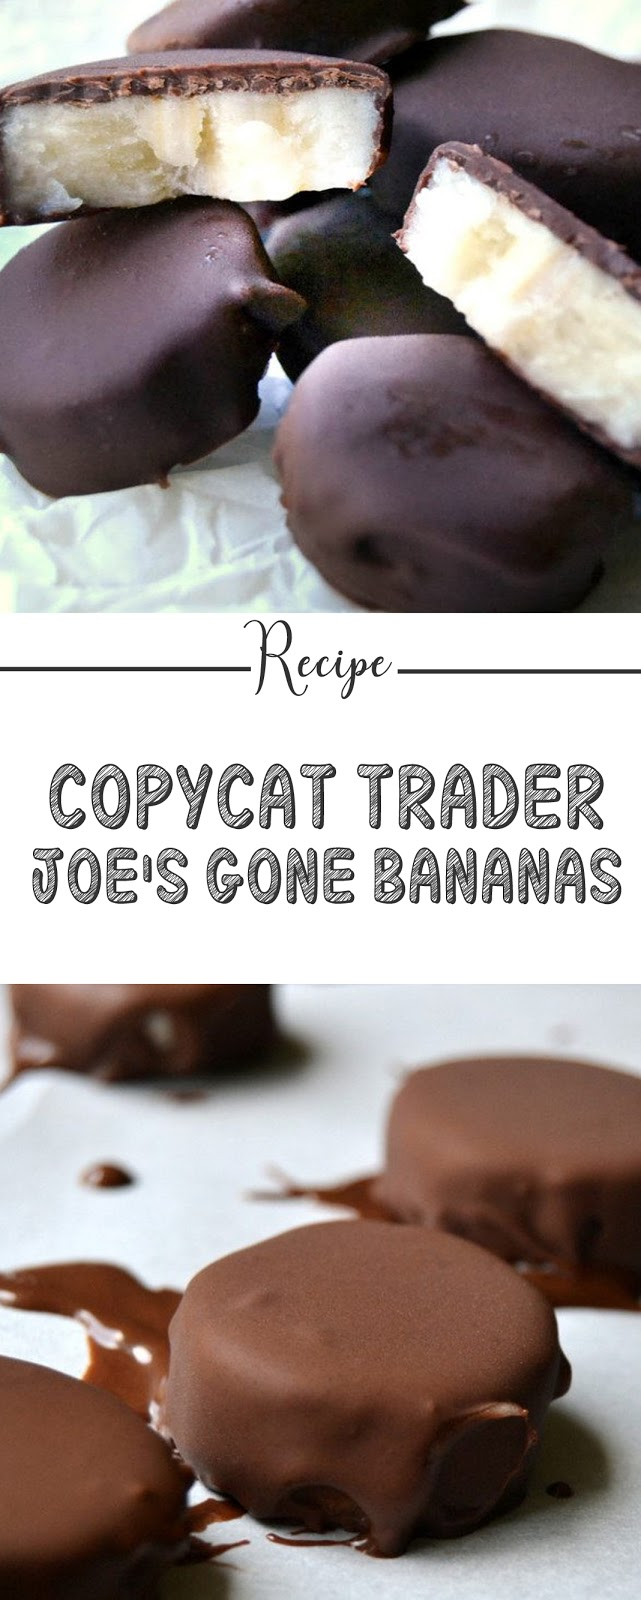 Recipe Copycat Trader Joe's Gone Bananas!